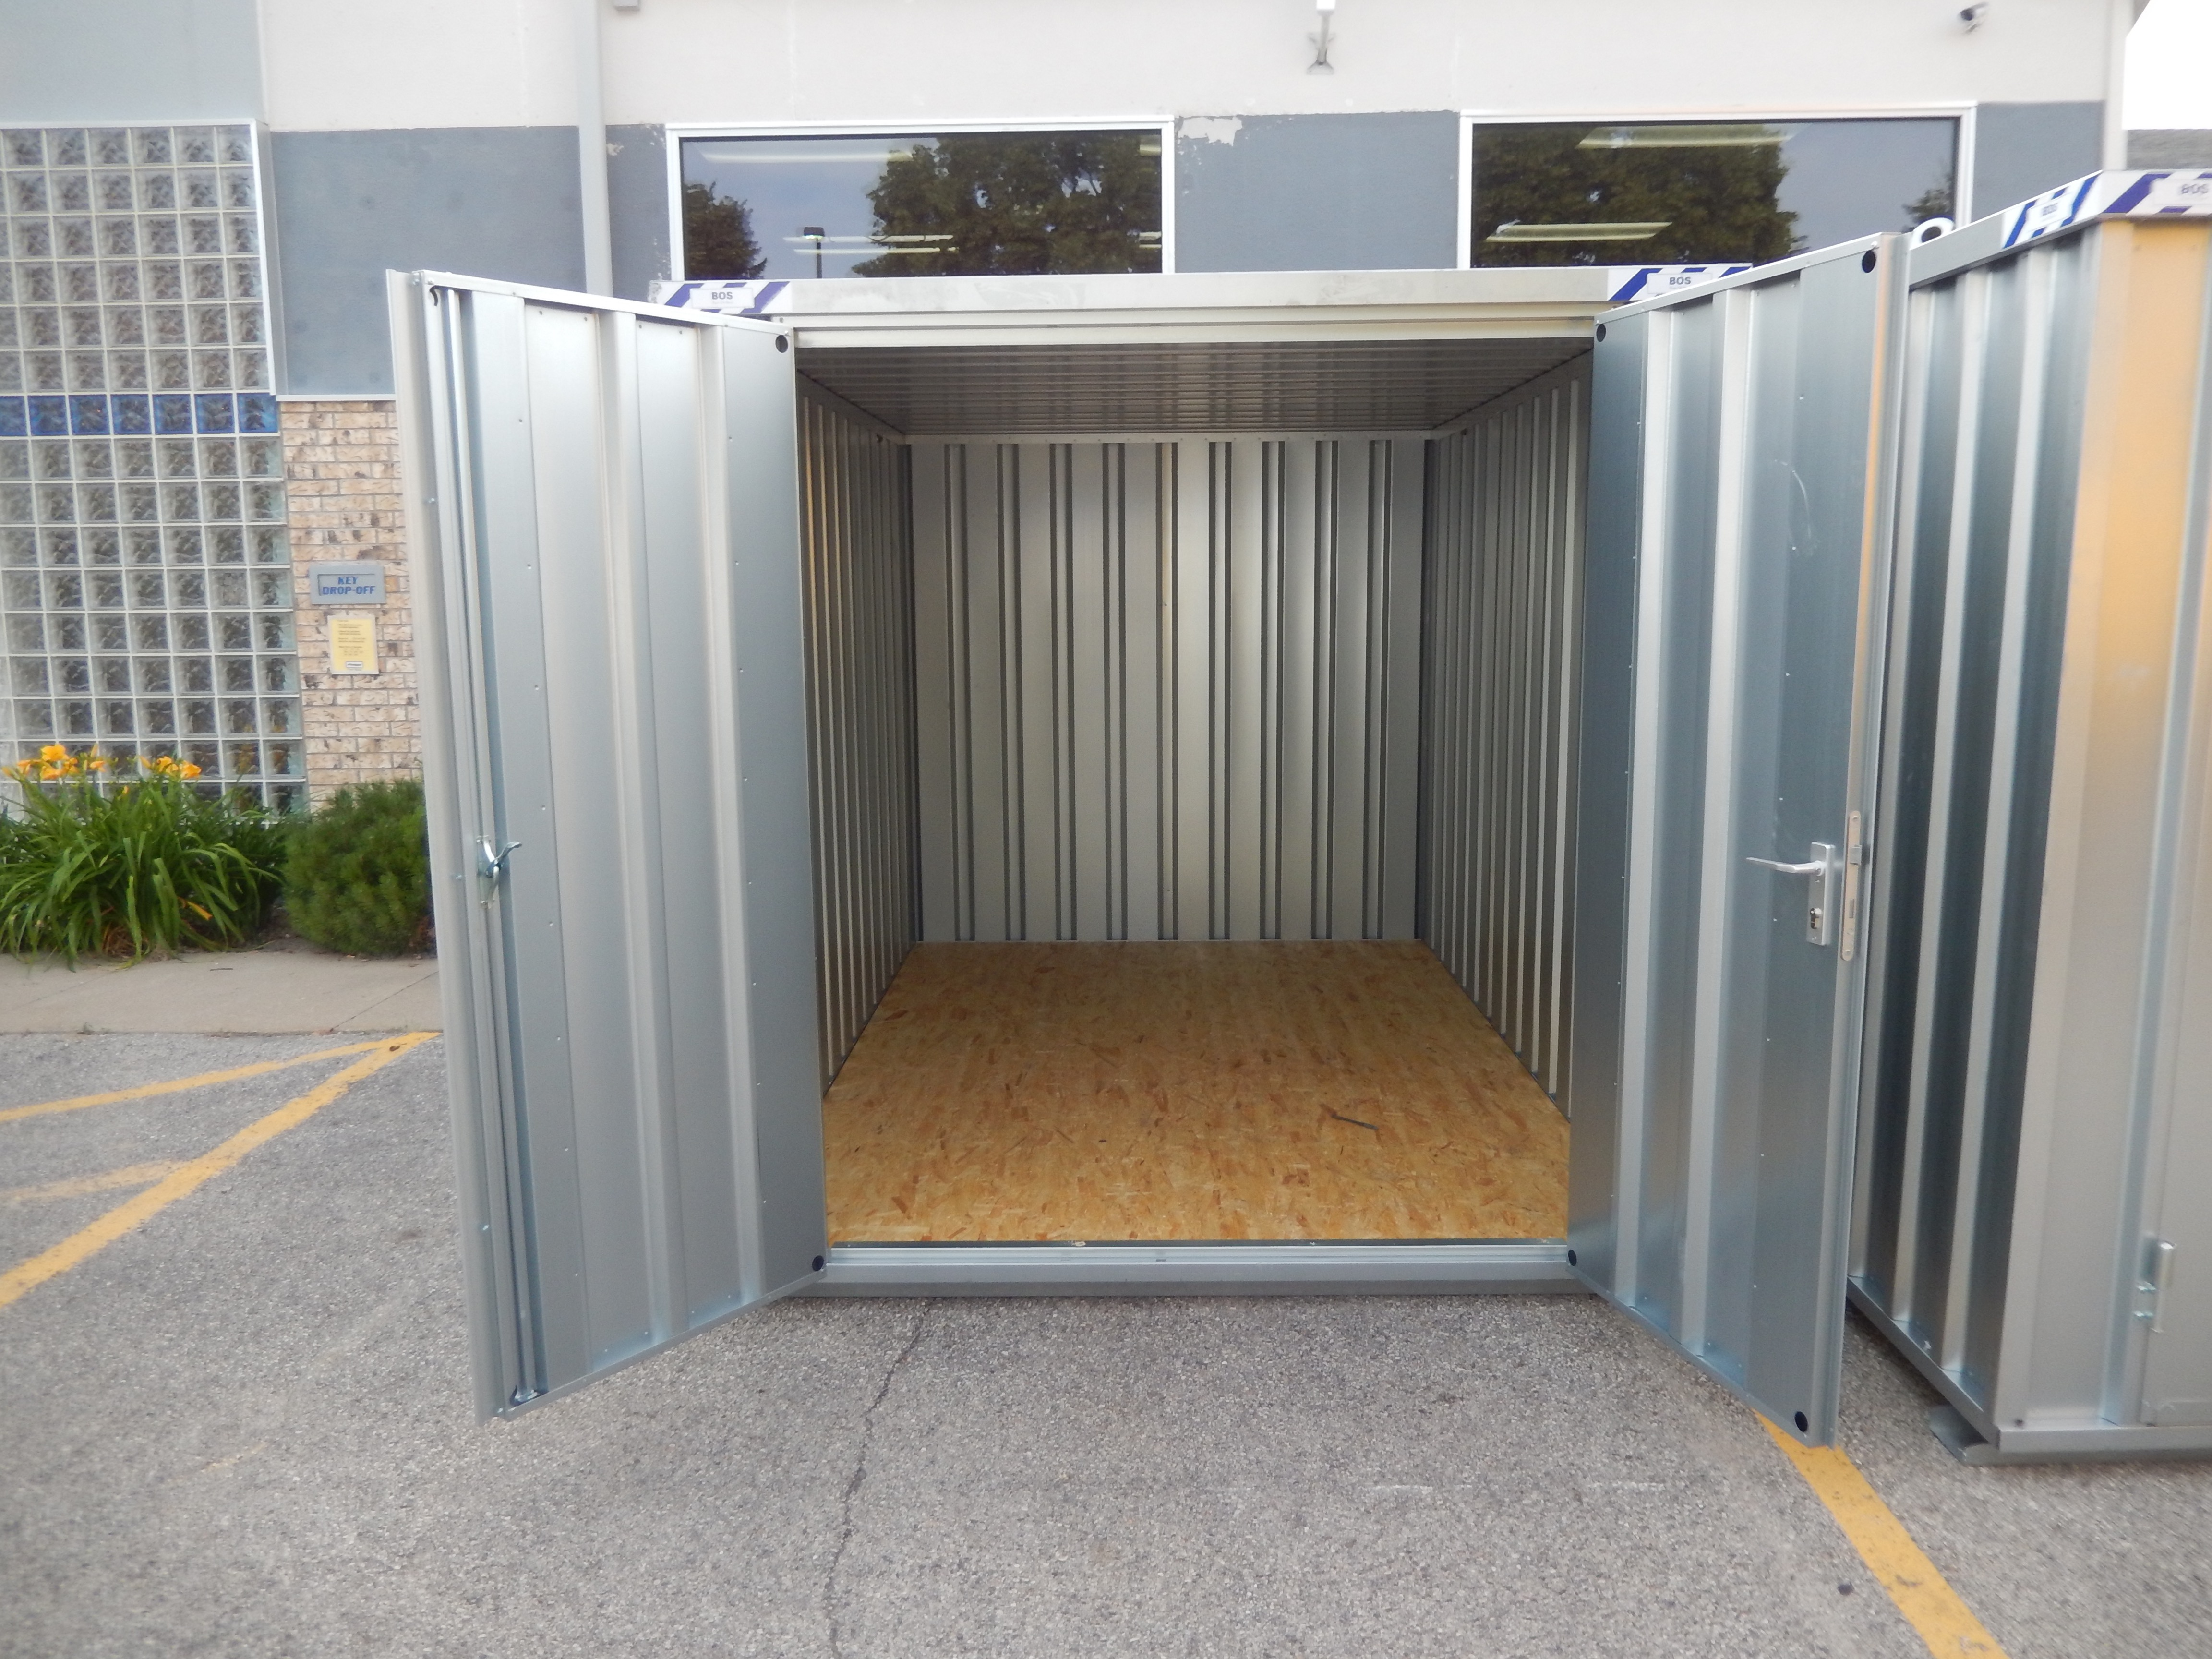 Open door to small portable temporary steel storage shed